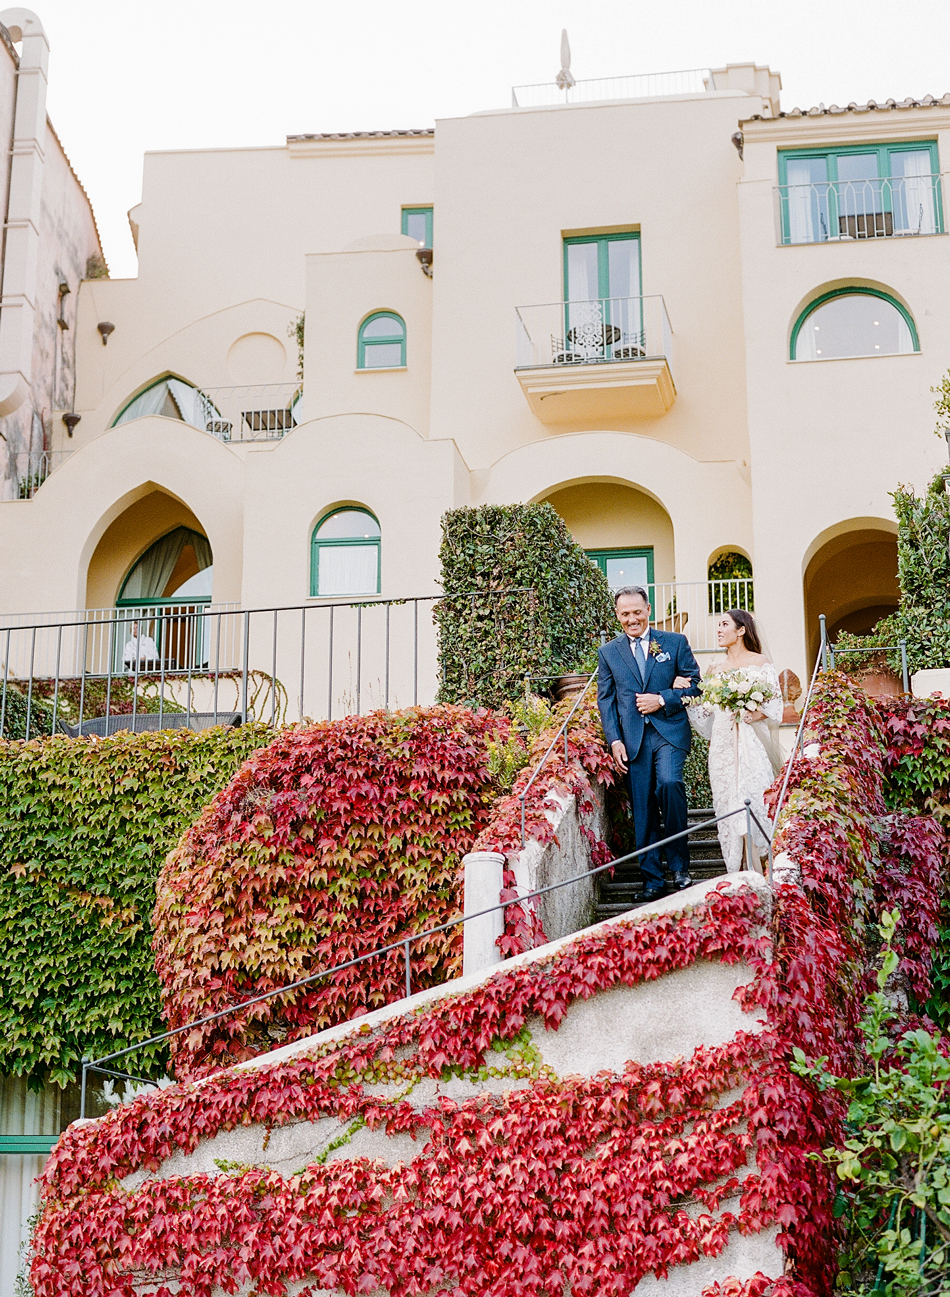 Italian wedding processional outdoors